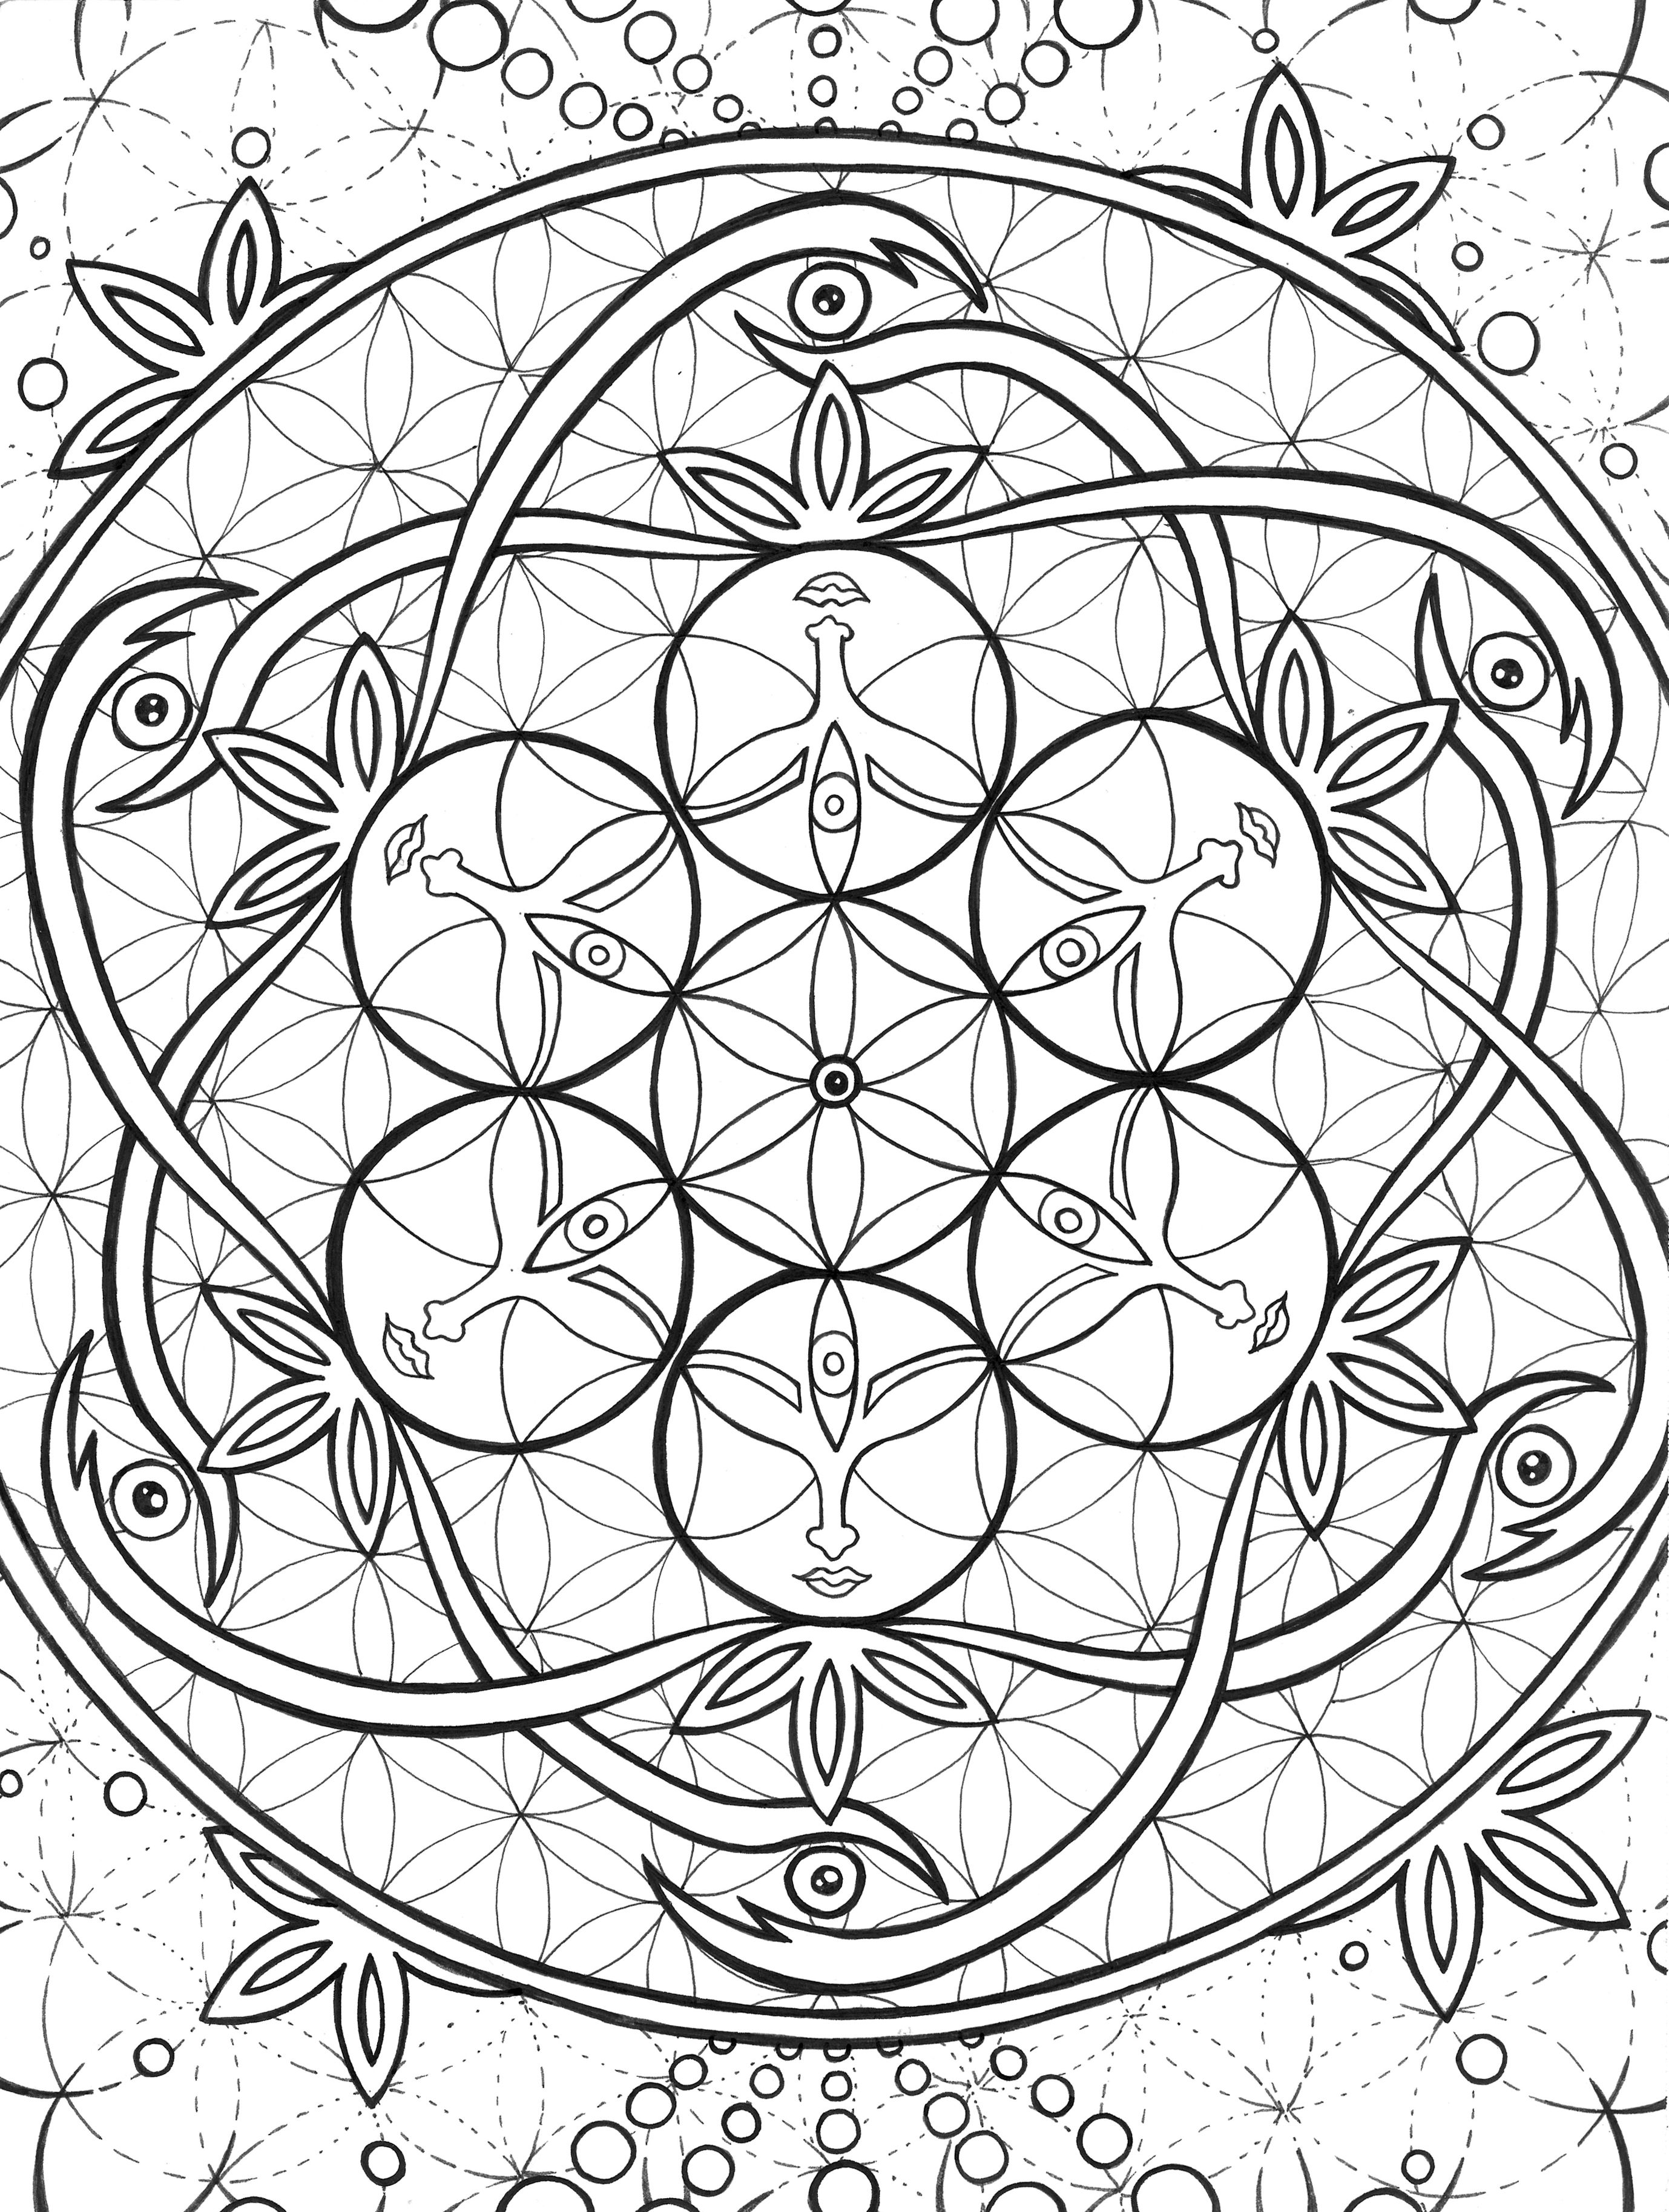 This Coloring Page Represents Unity Individual Flowers Reaching To Connect With What We Cannot Fully Per Sacred Geometry Symbols Colorful Heart Coloring Pages